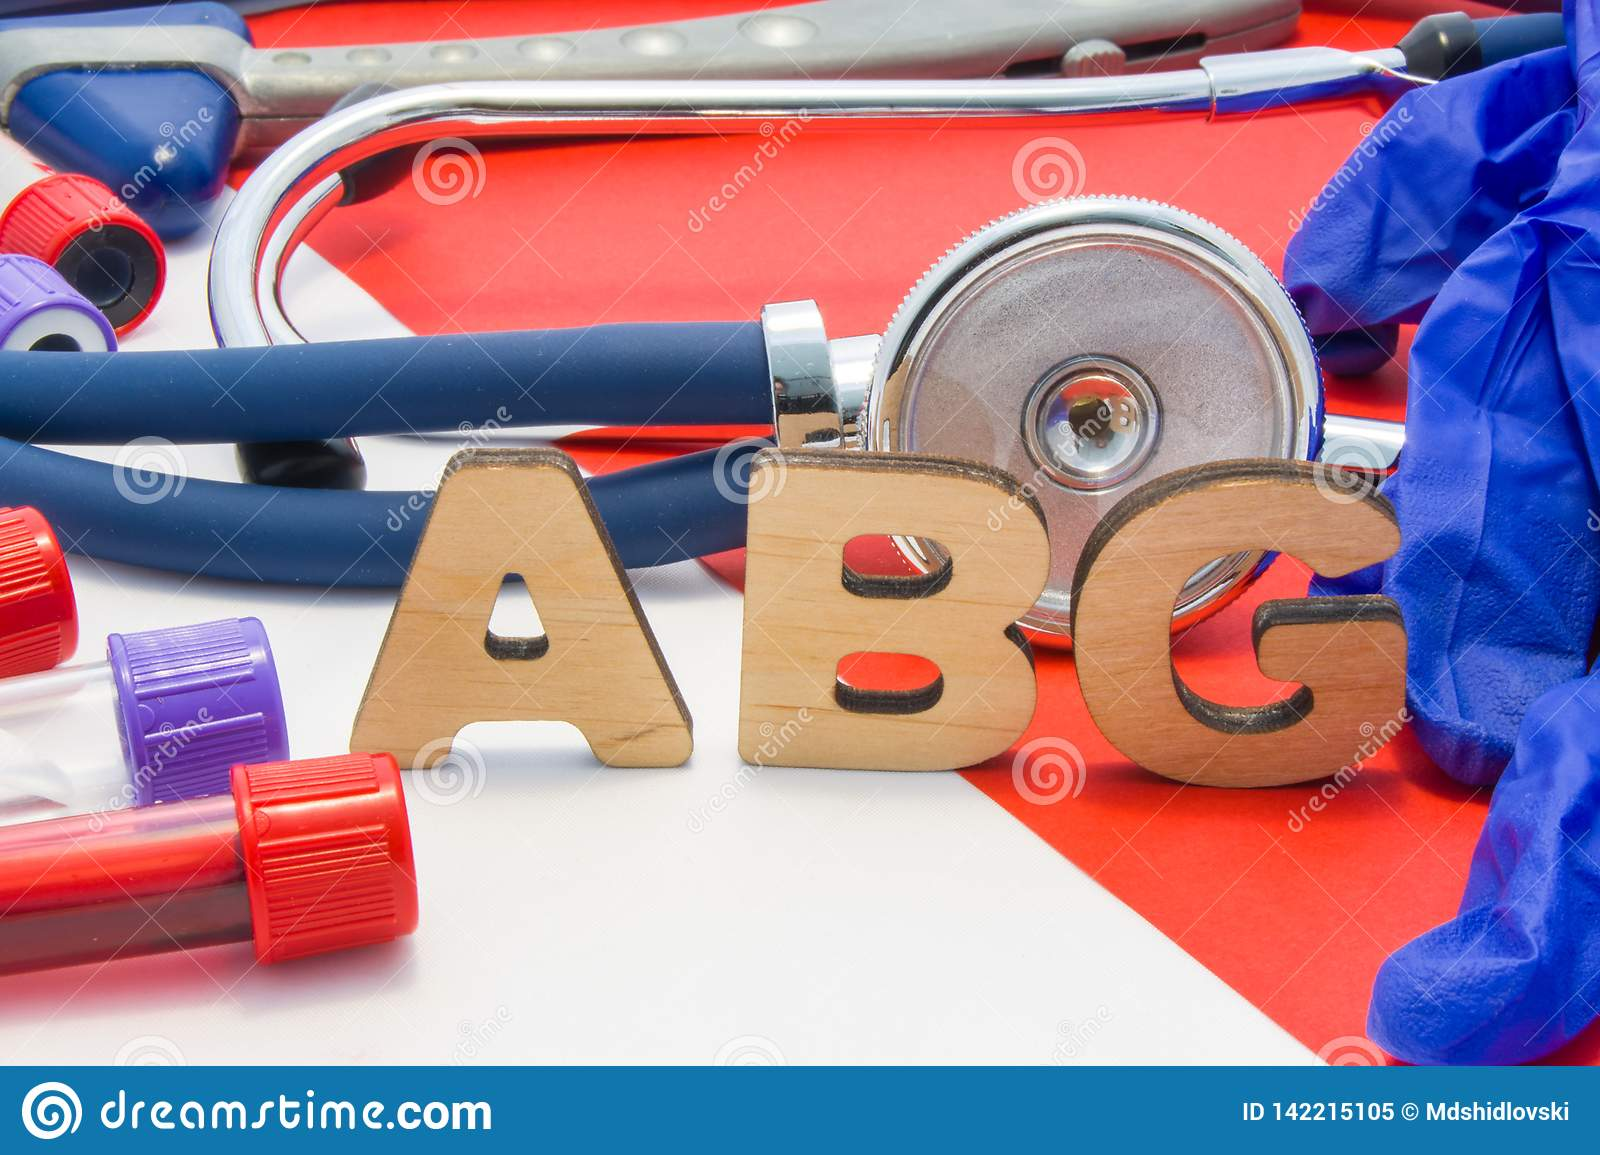 ABG medical abbreviation meaning arterial blood gas in blood in laboratory diagnostics on red background. Chemical name of ABG is